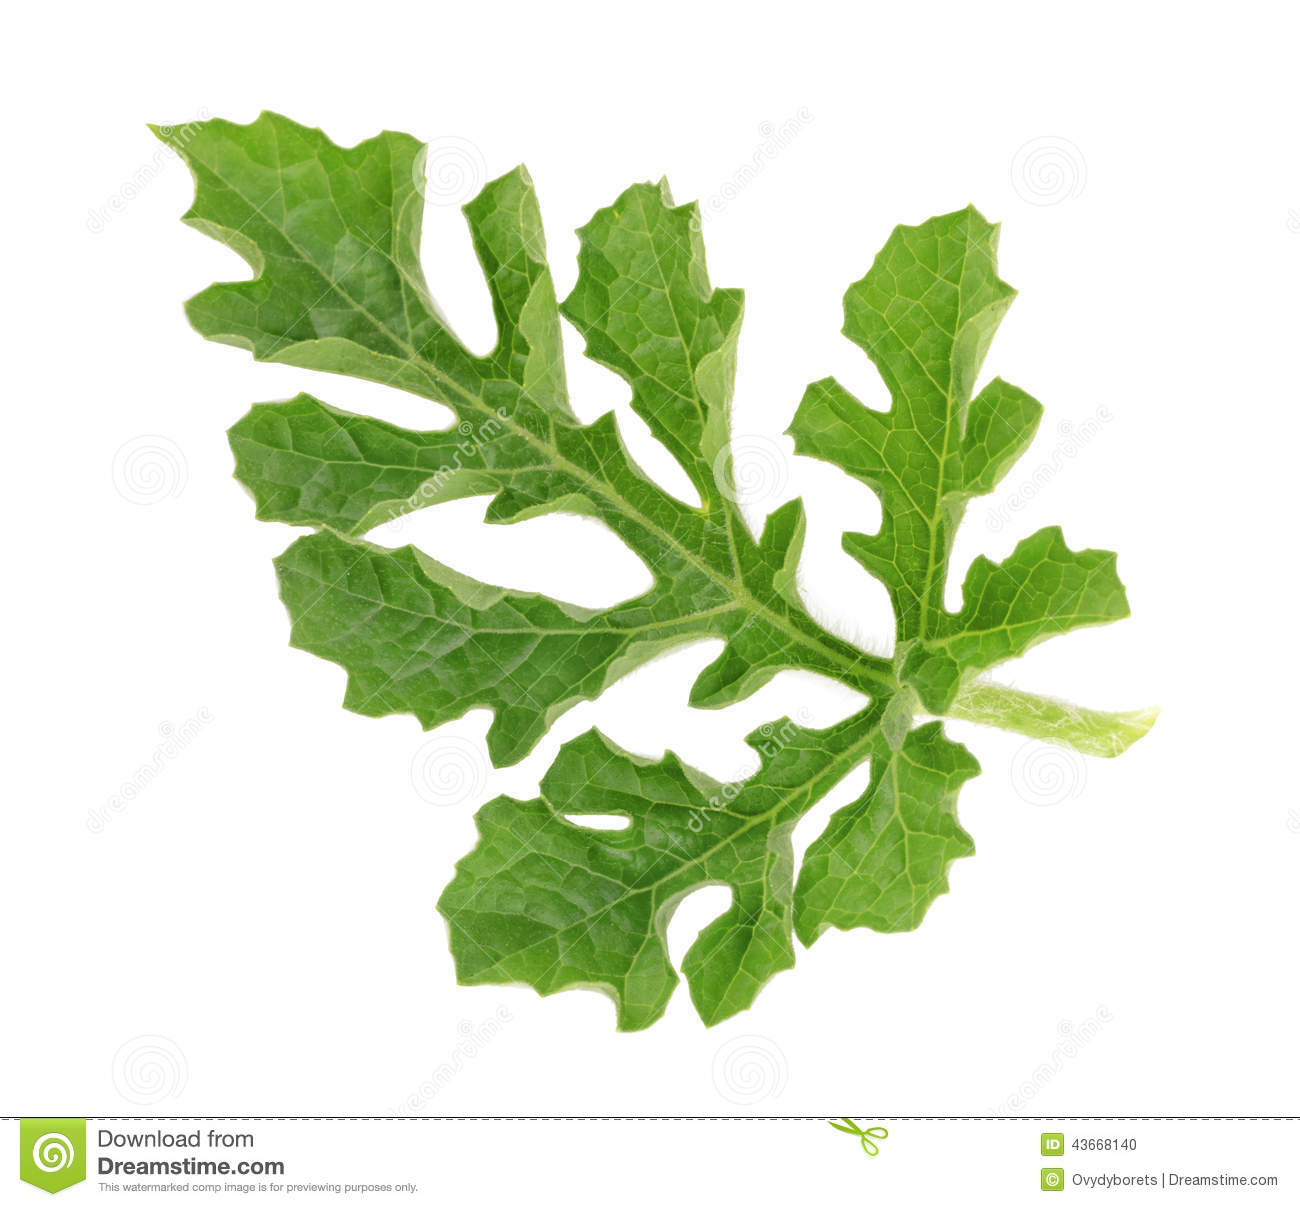 Watermelon clipart leaf On Leaves watermelon Clipart (15+)